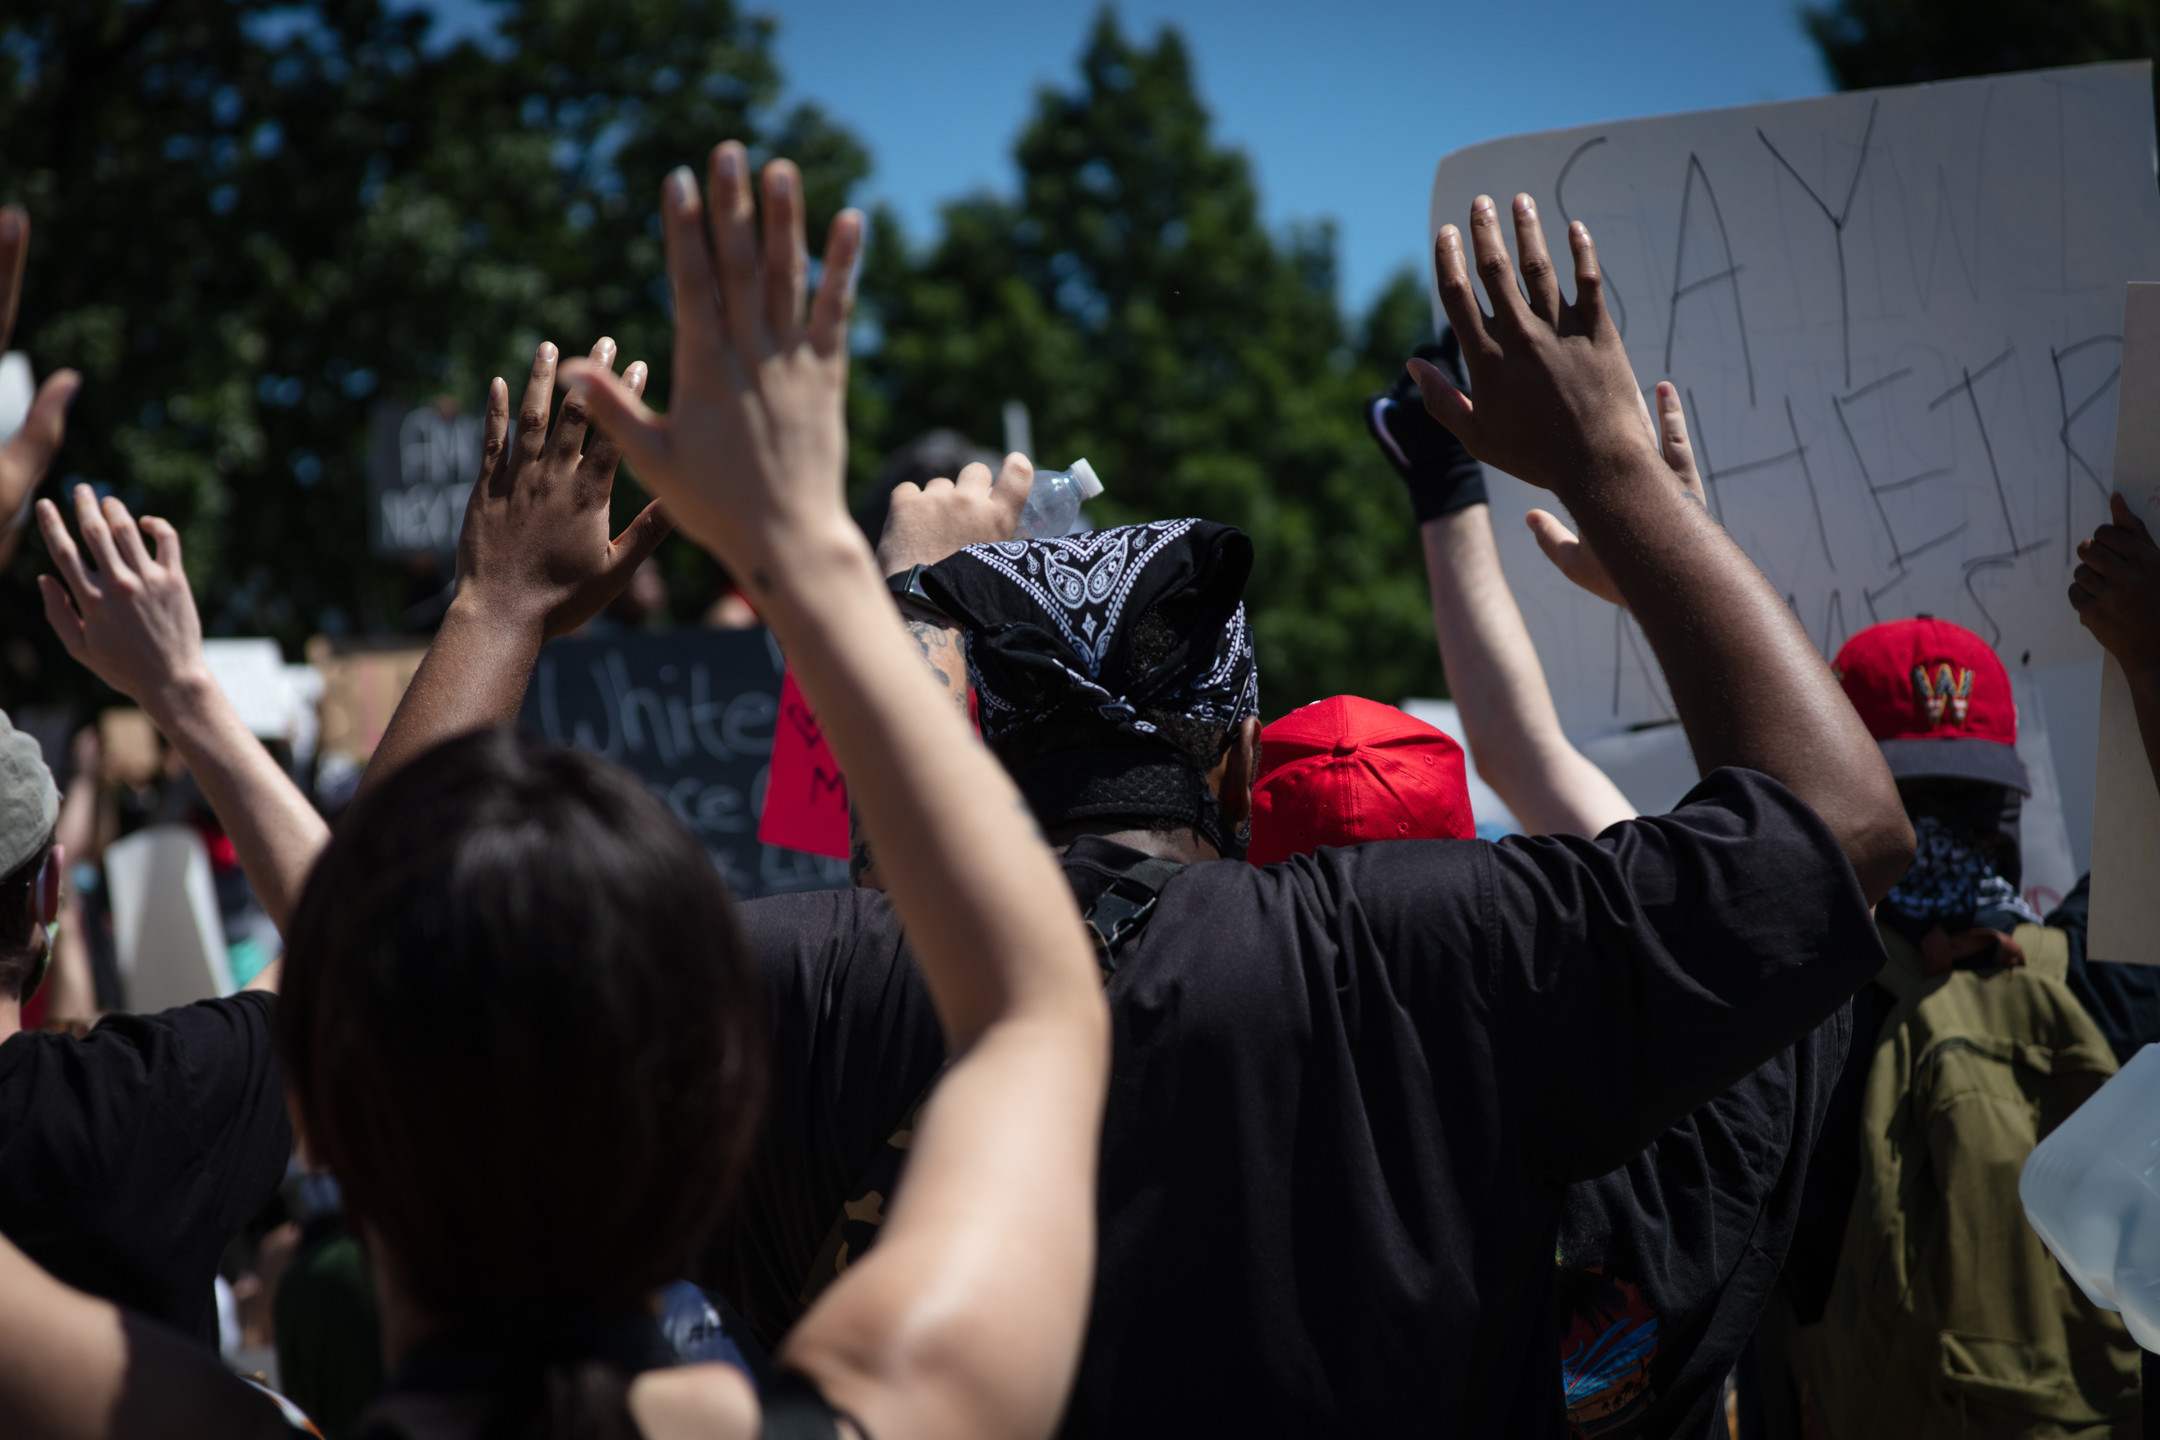 Protesters hold their hands up to symbolize the unarmed black Americans murdered by police, in some cases with their hands up to show they were unarmed. Outside of the United States Capitol in Washington, D.C., May 30, 2020.